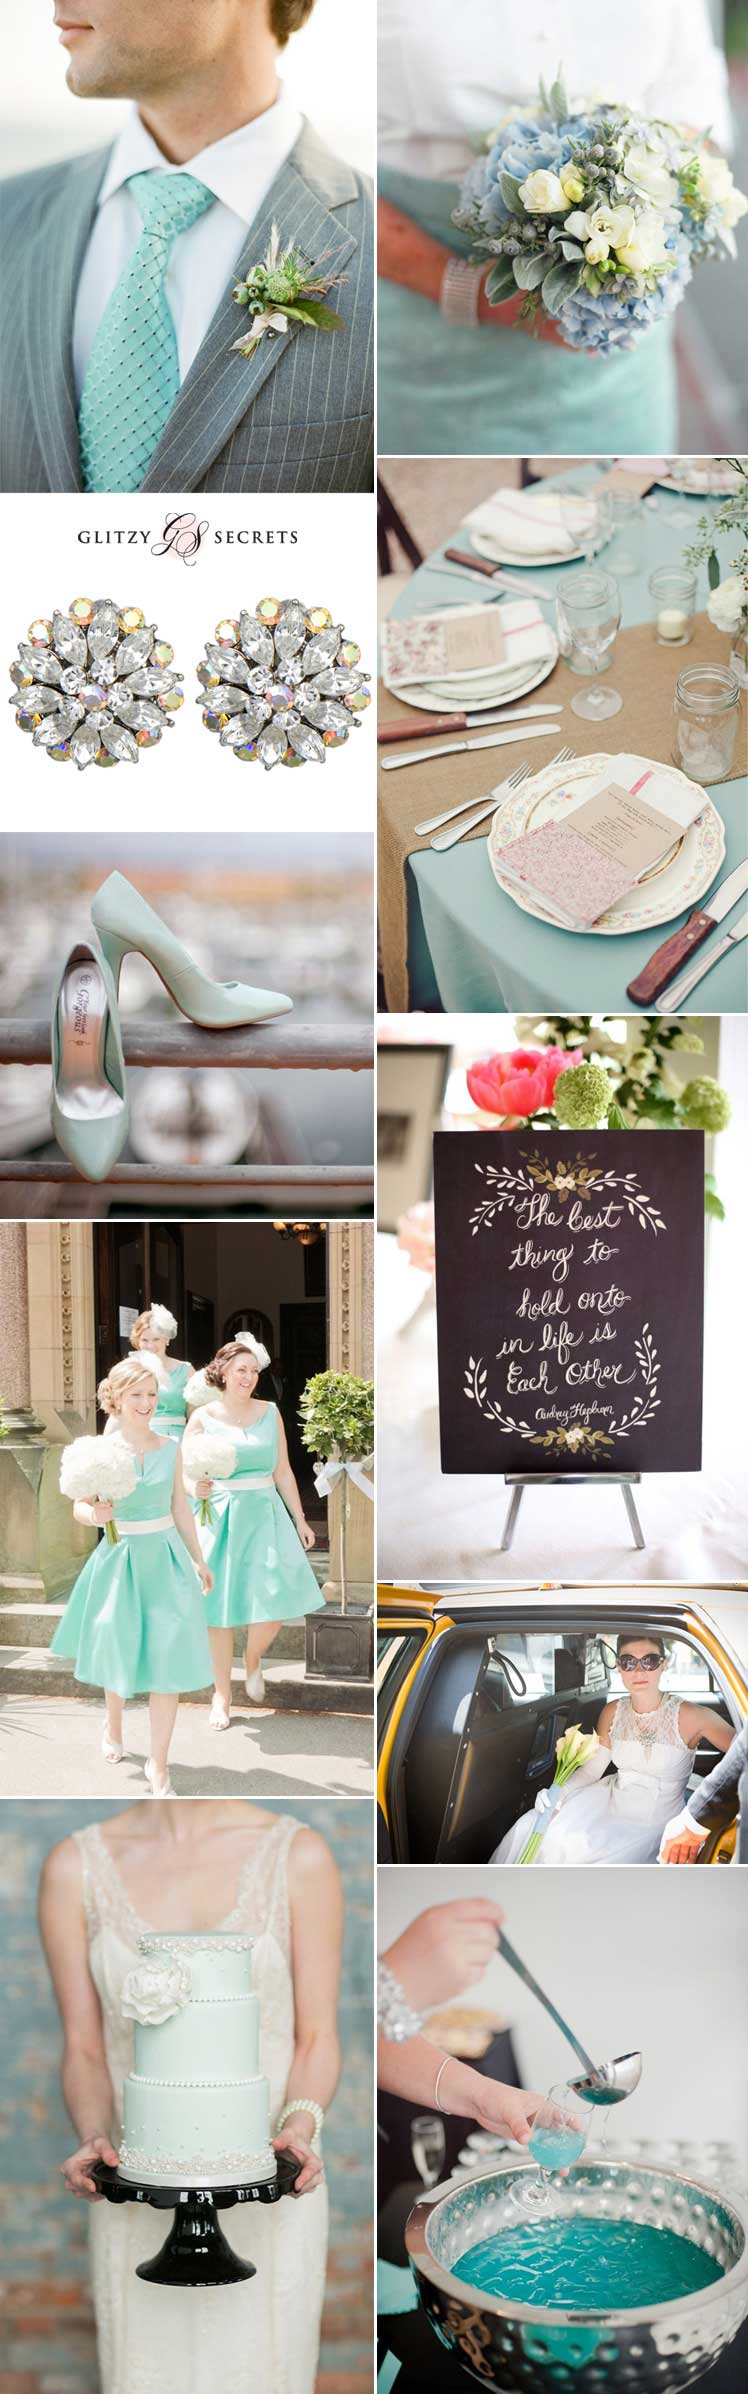 sensational ideas for a breakfast at tiffanys wedding